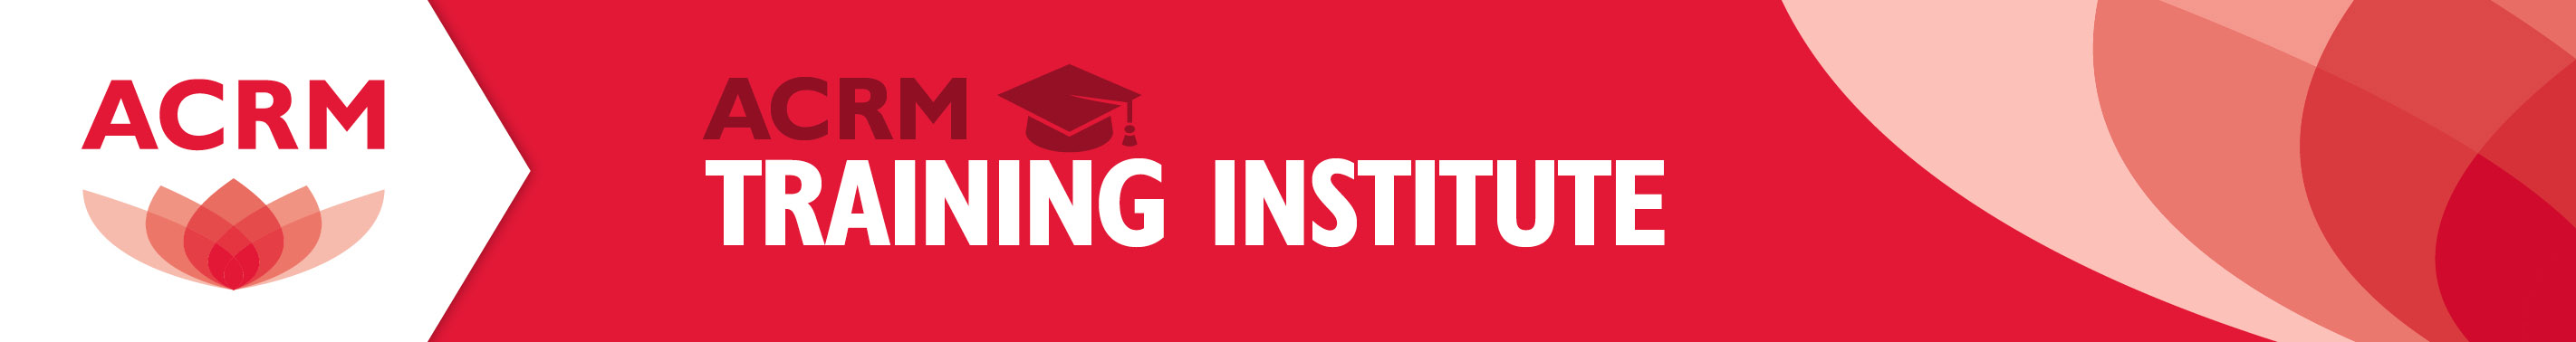 ACRM Training Institute header